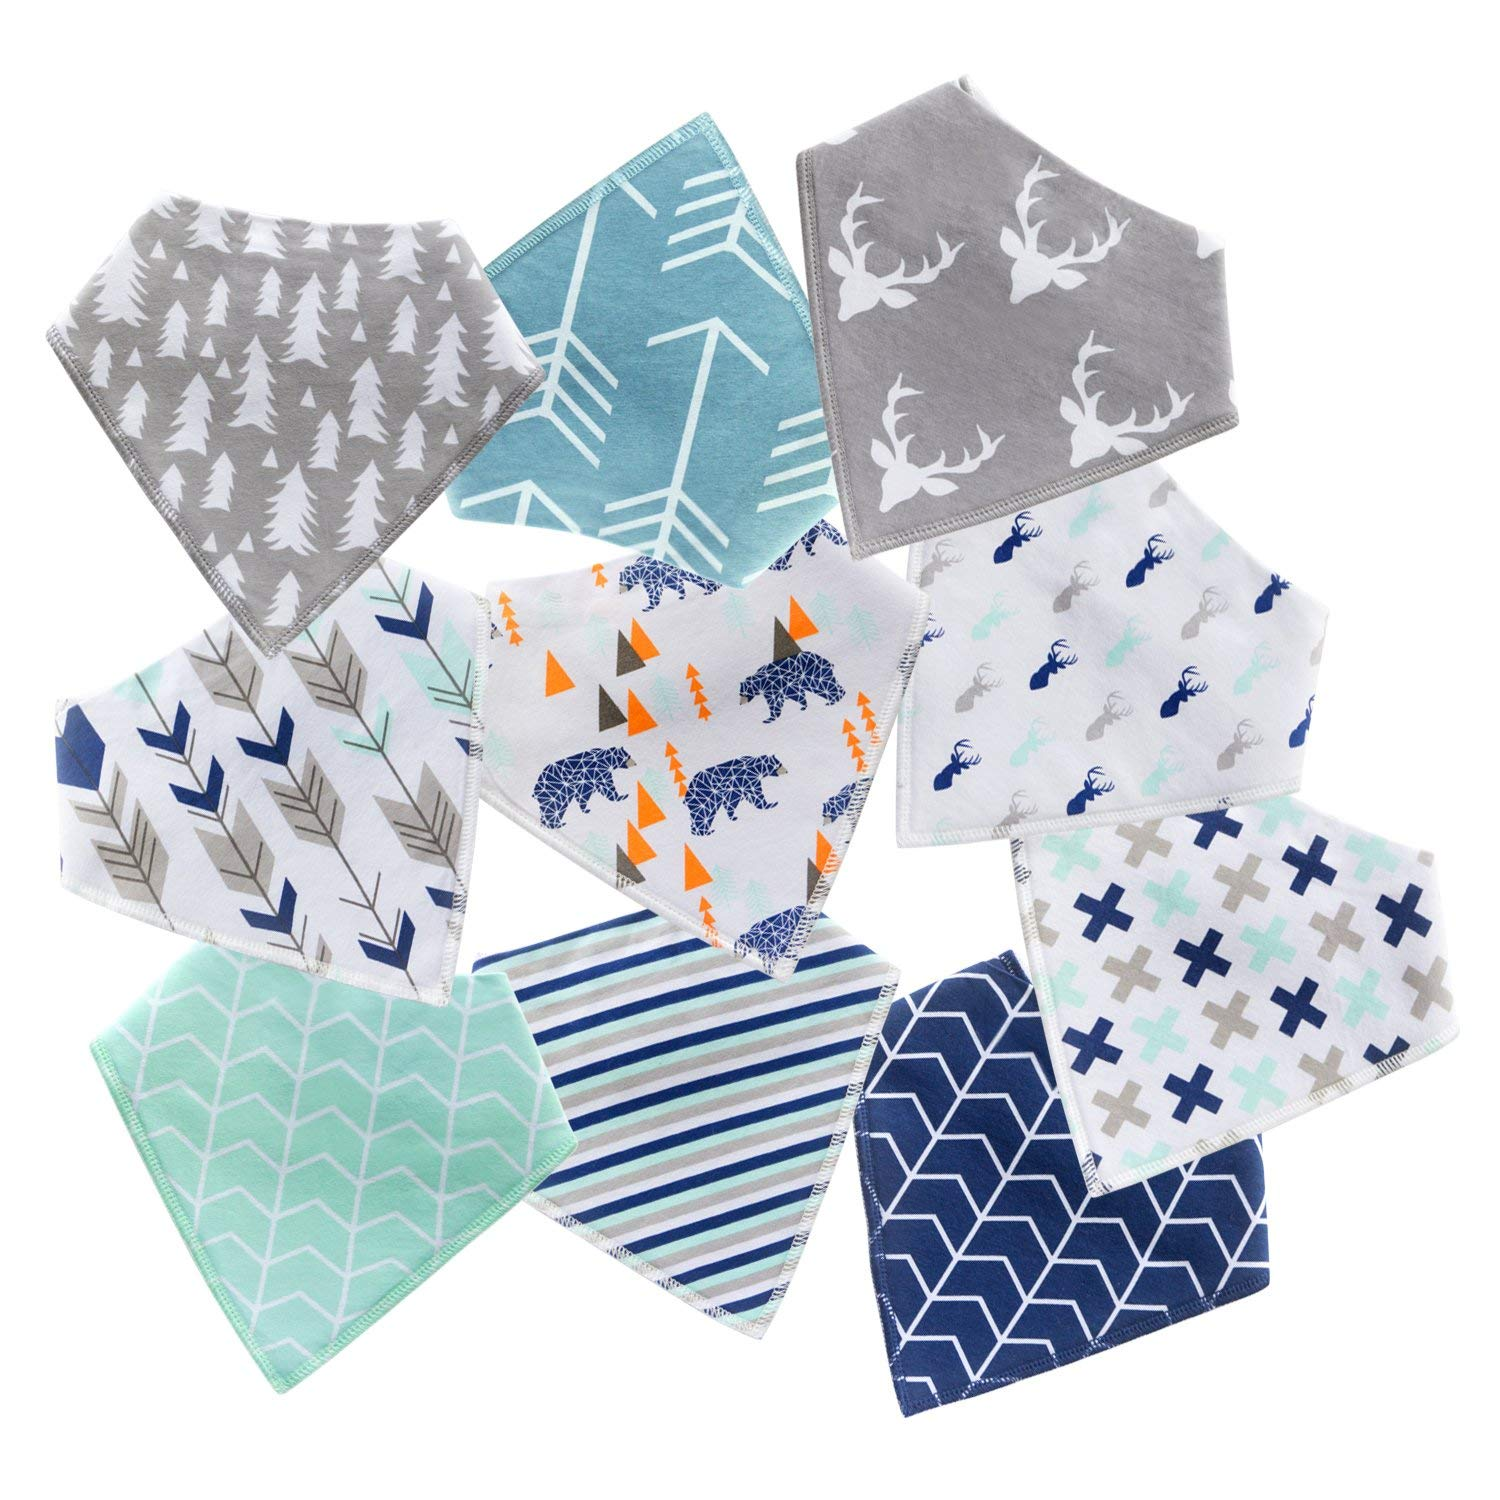 10 Pack Dribble Drool Bibs with Snaps Baby Shower Gift Set for Teething and Drooling Super Absorbent Cotton Feeding Bibs for Newborns Boys Infants Toddlers LEONNAGAR Baby Bandana Bibs